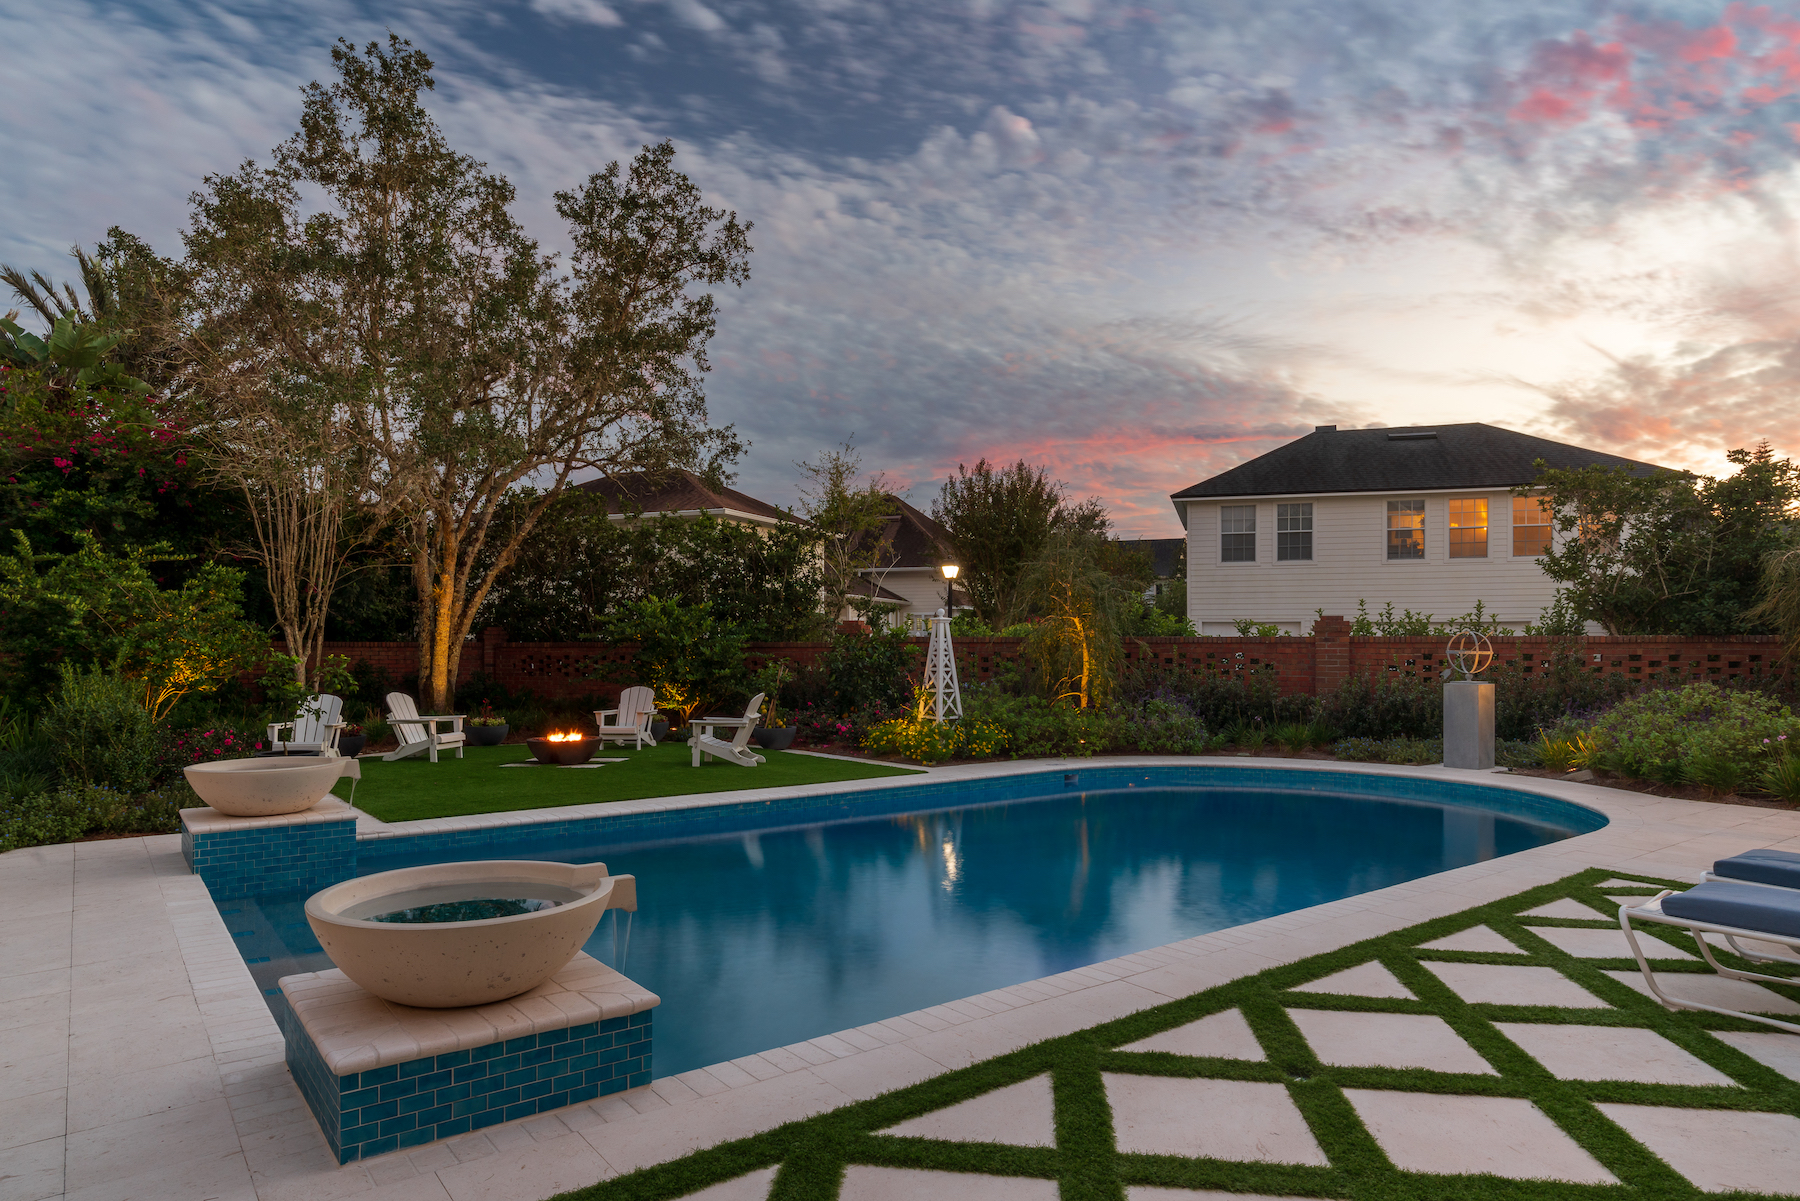 Poolside patio with white travertine and artificial turf